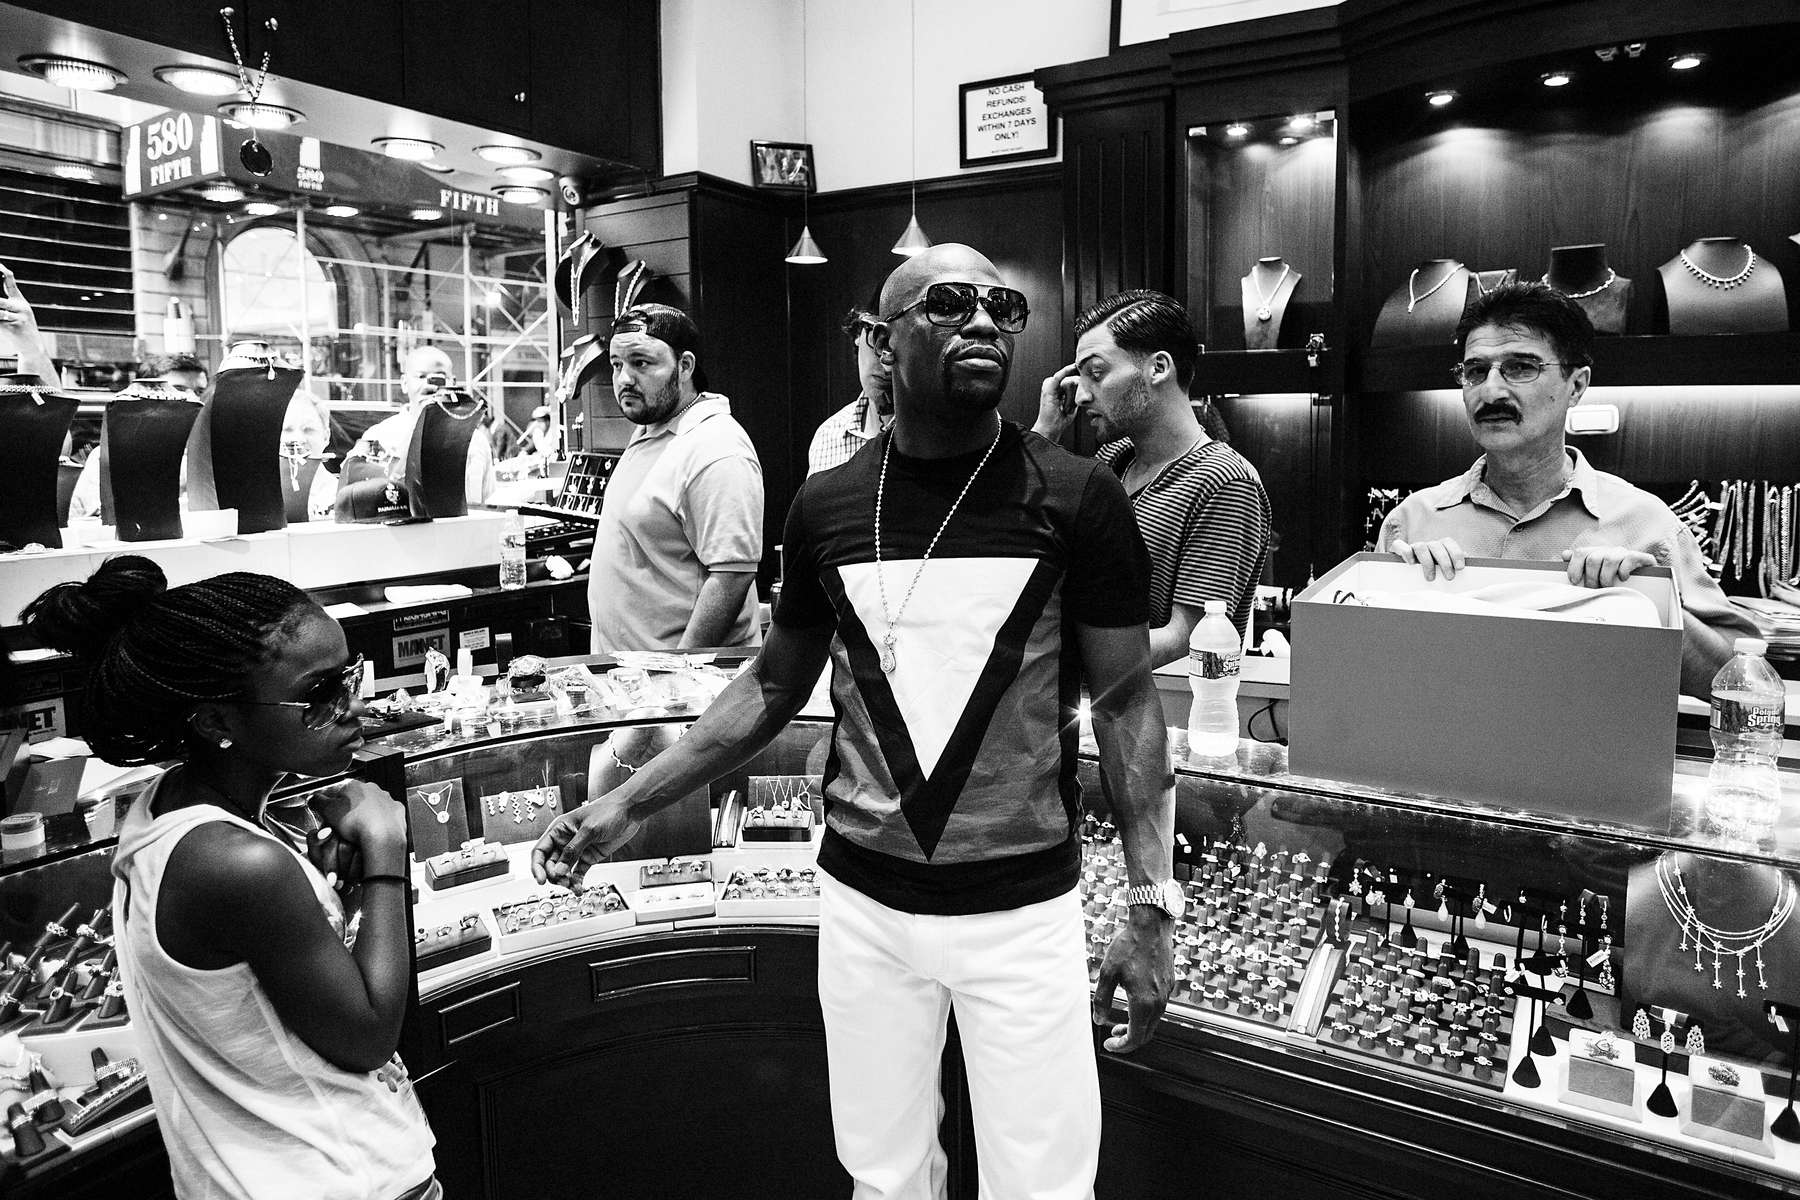 NEW YORK CITY, NY - JUNE 24: Boxer Floyd Mayweather looks at the merchandise on display at Rafaello & Co., a New York City jewelry store that caters to the ultrarich. Mayweather spent over $250K in one hour. (Photo by Benjamin Lowy/Reportage by Getty Images)